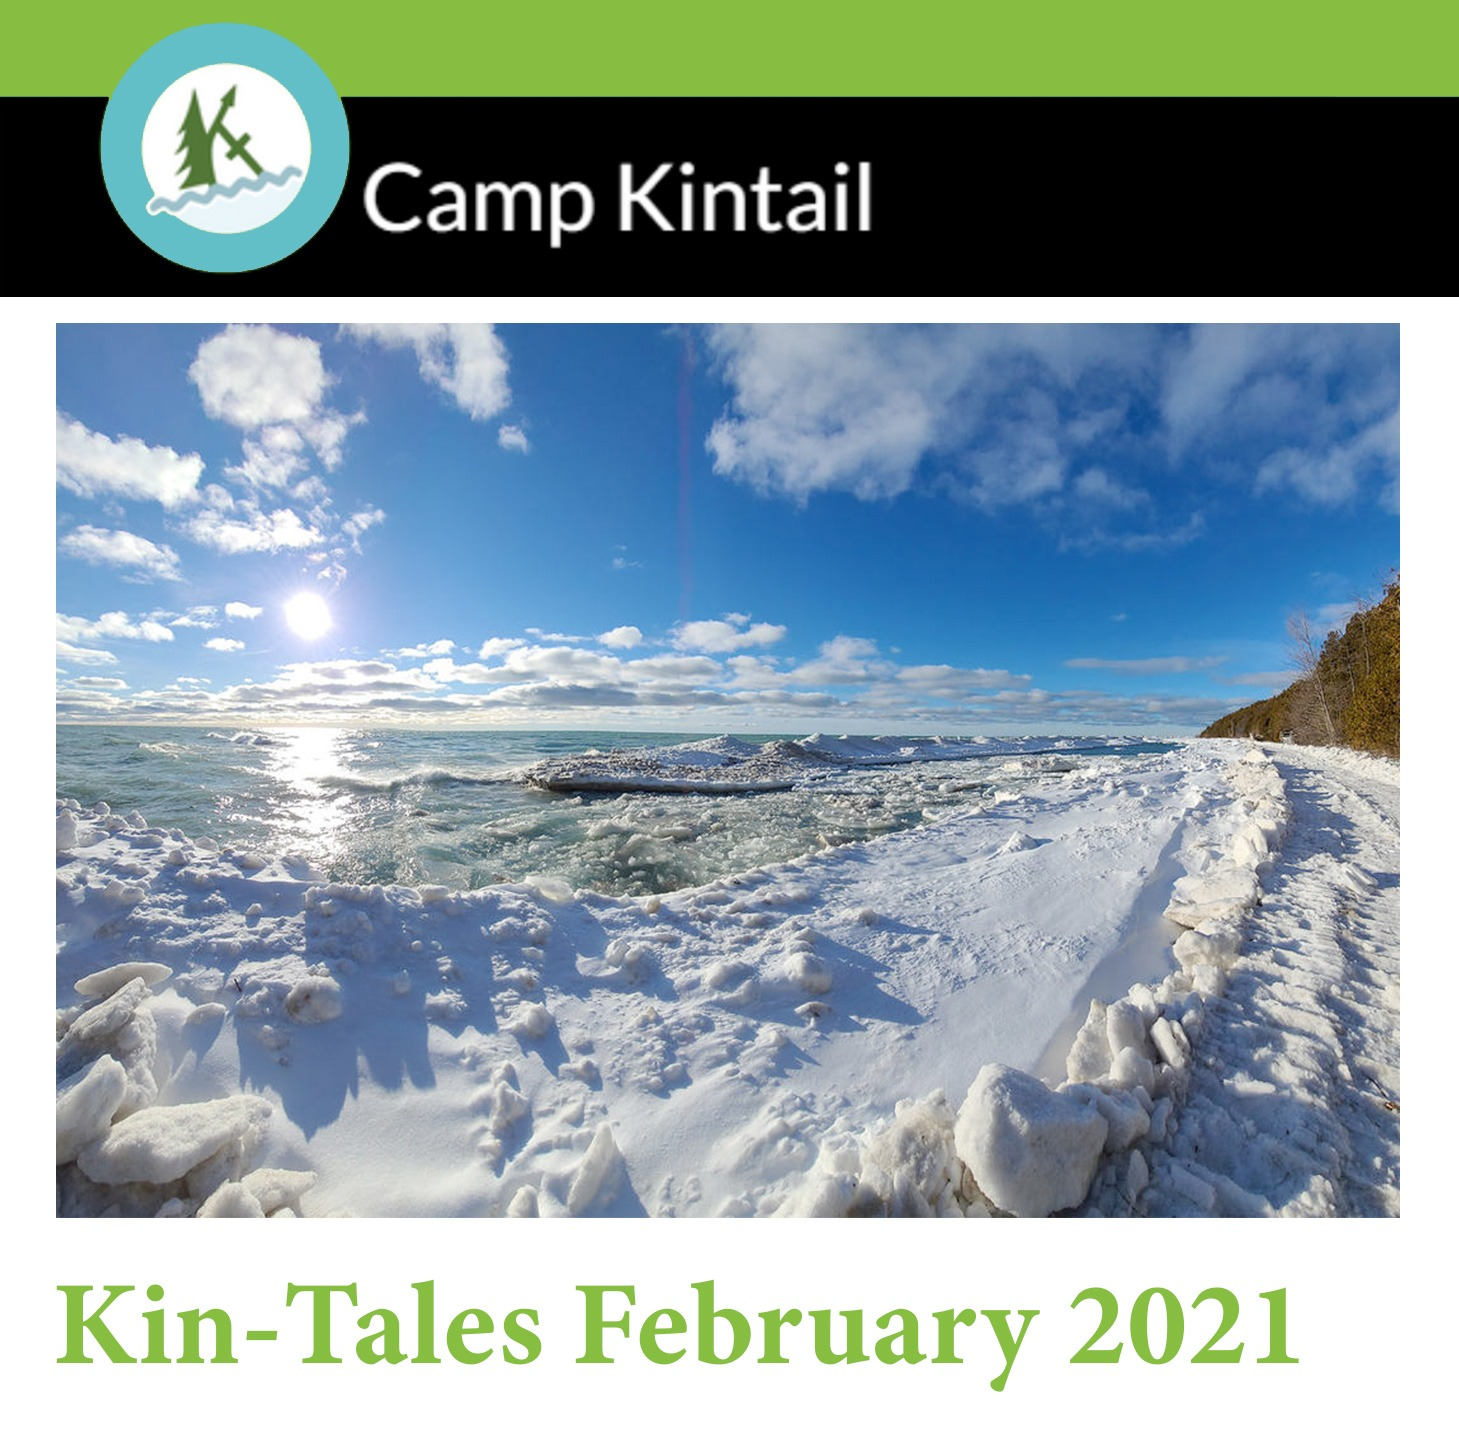 Title Text: Kin-Tales February 2021. Image: Snowy and icy waterfront with blue sky and sun